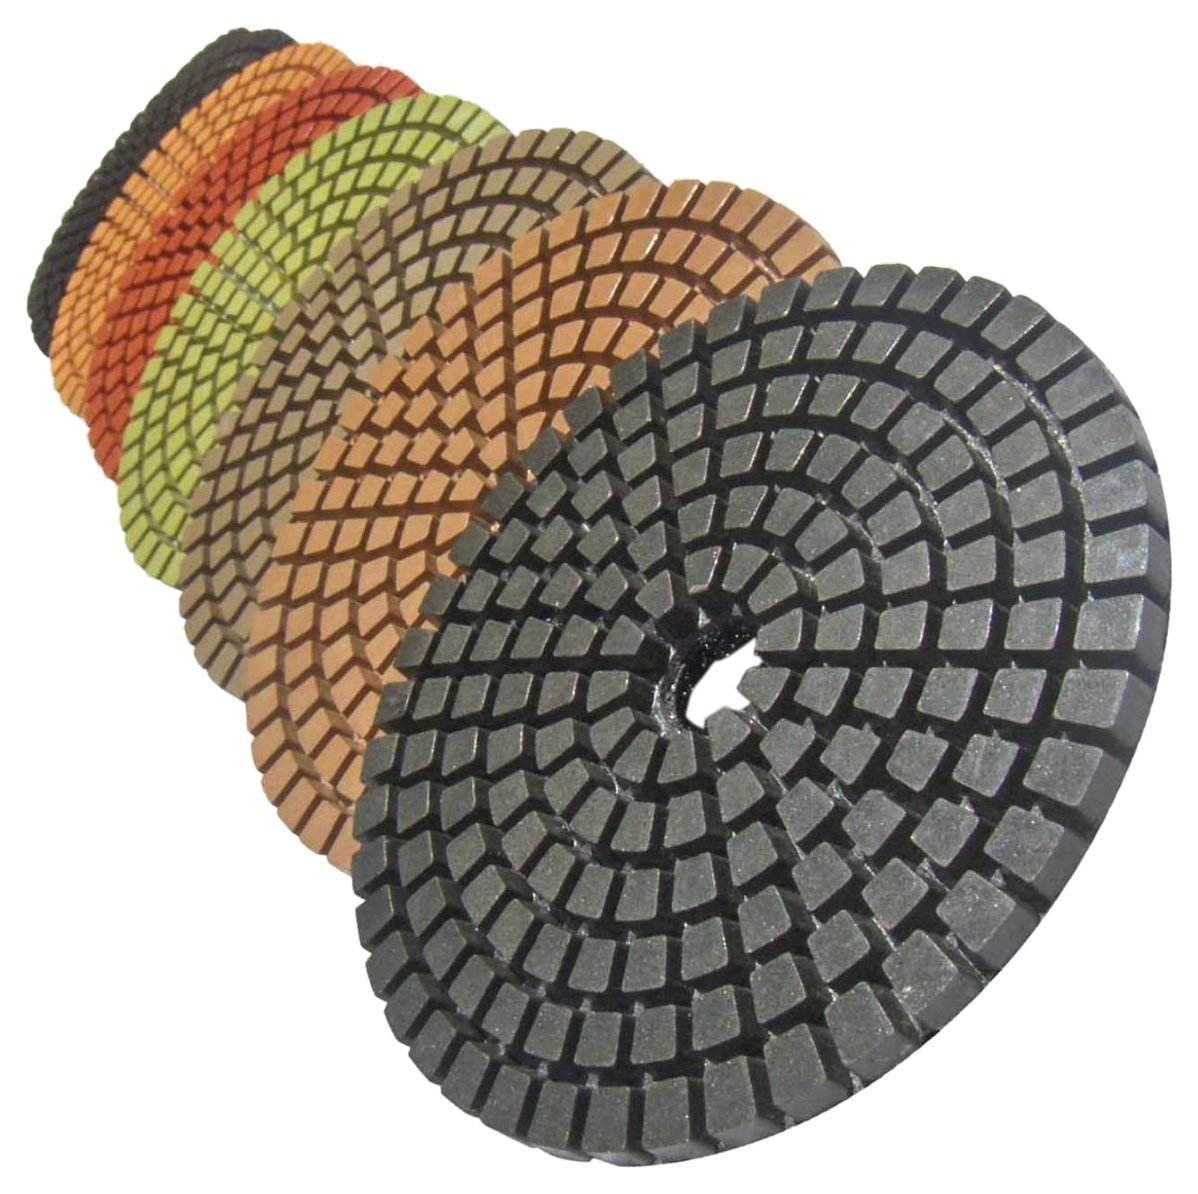 STADEA Premium Grade Wet 5' Diamond Polishing Pads Set For GRANITE MARBLE STONE Polish Shop N Save Diamond Tools DPPW05STDA503K7P